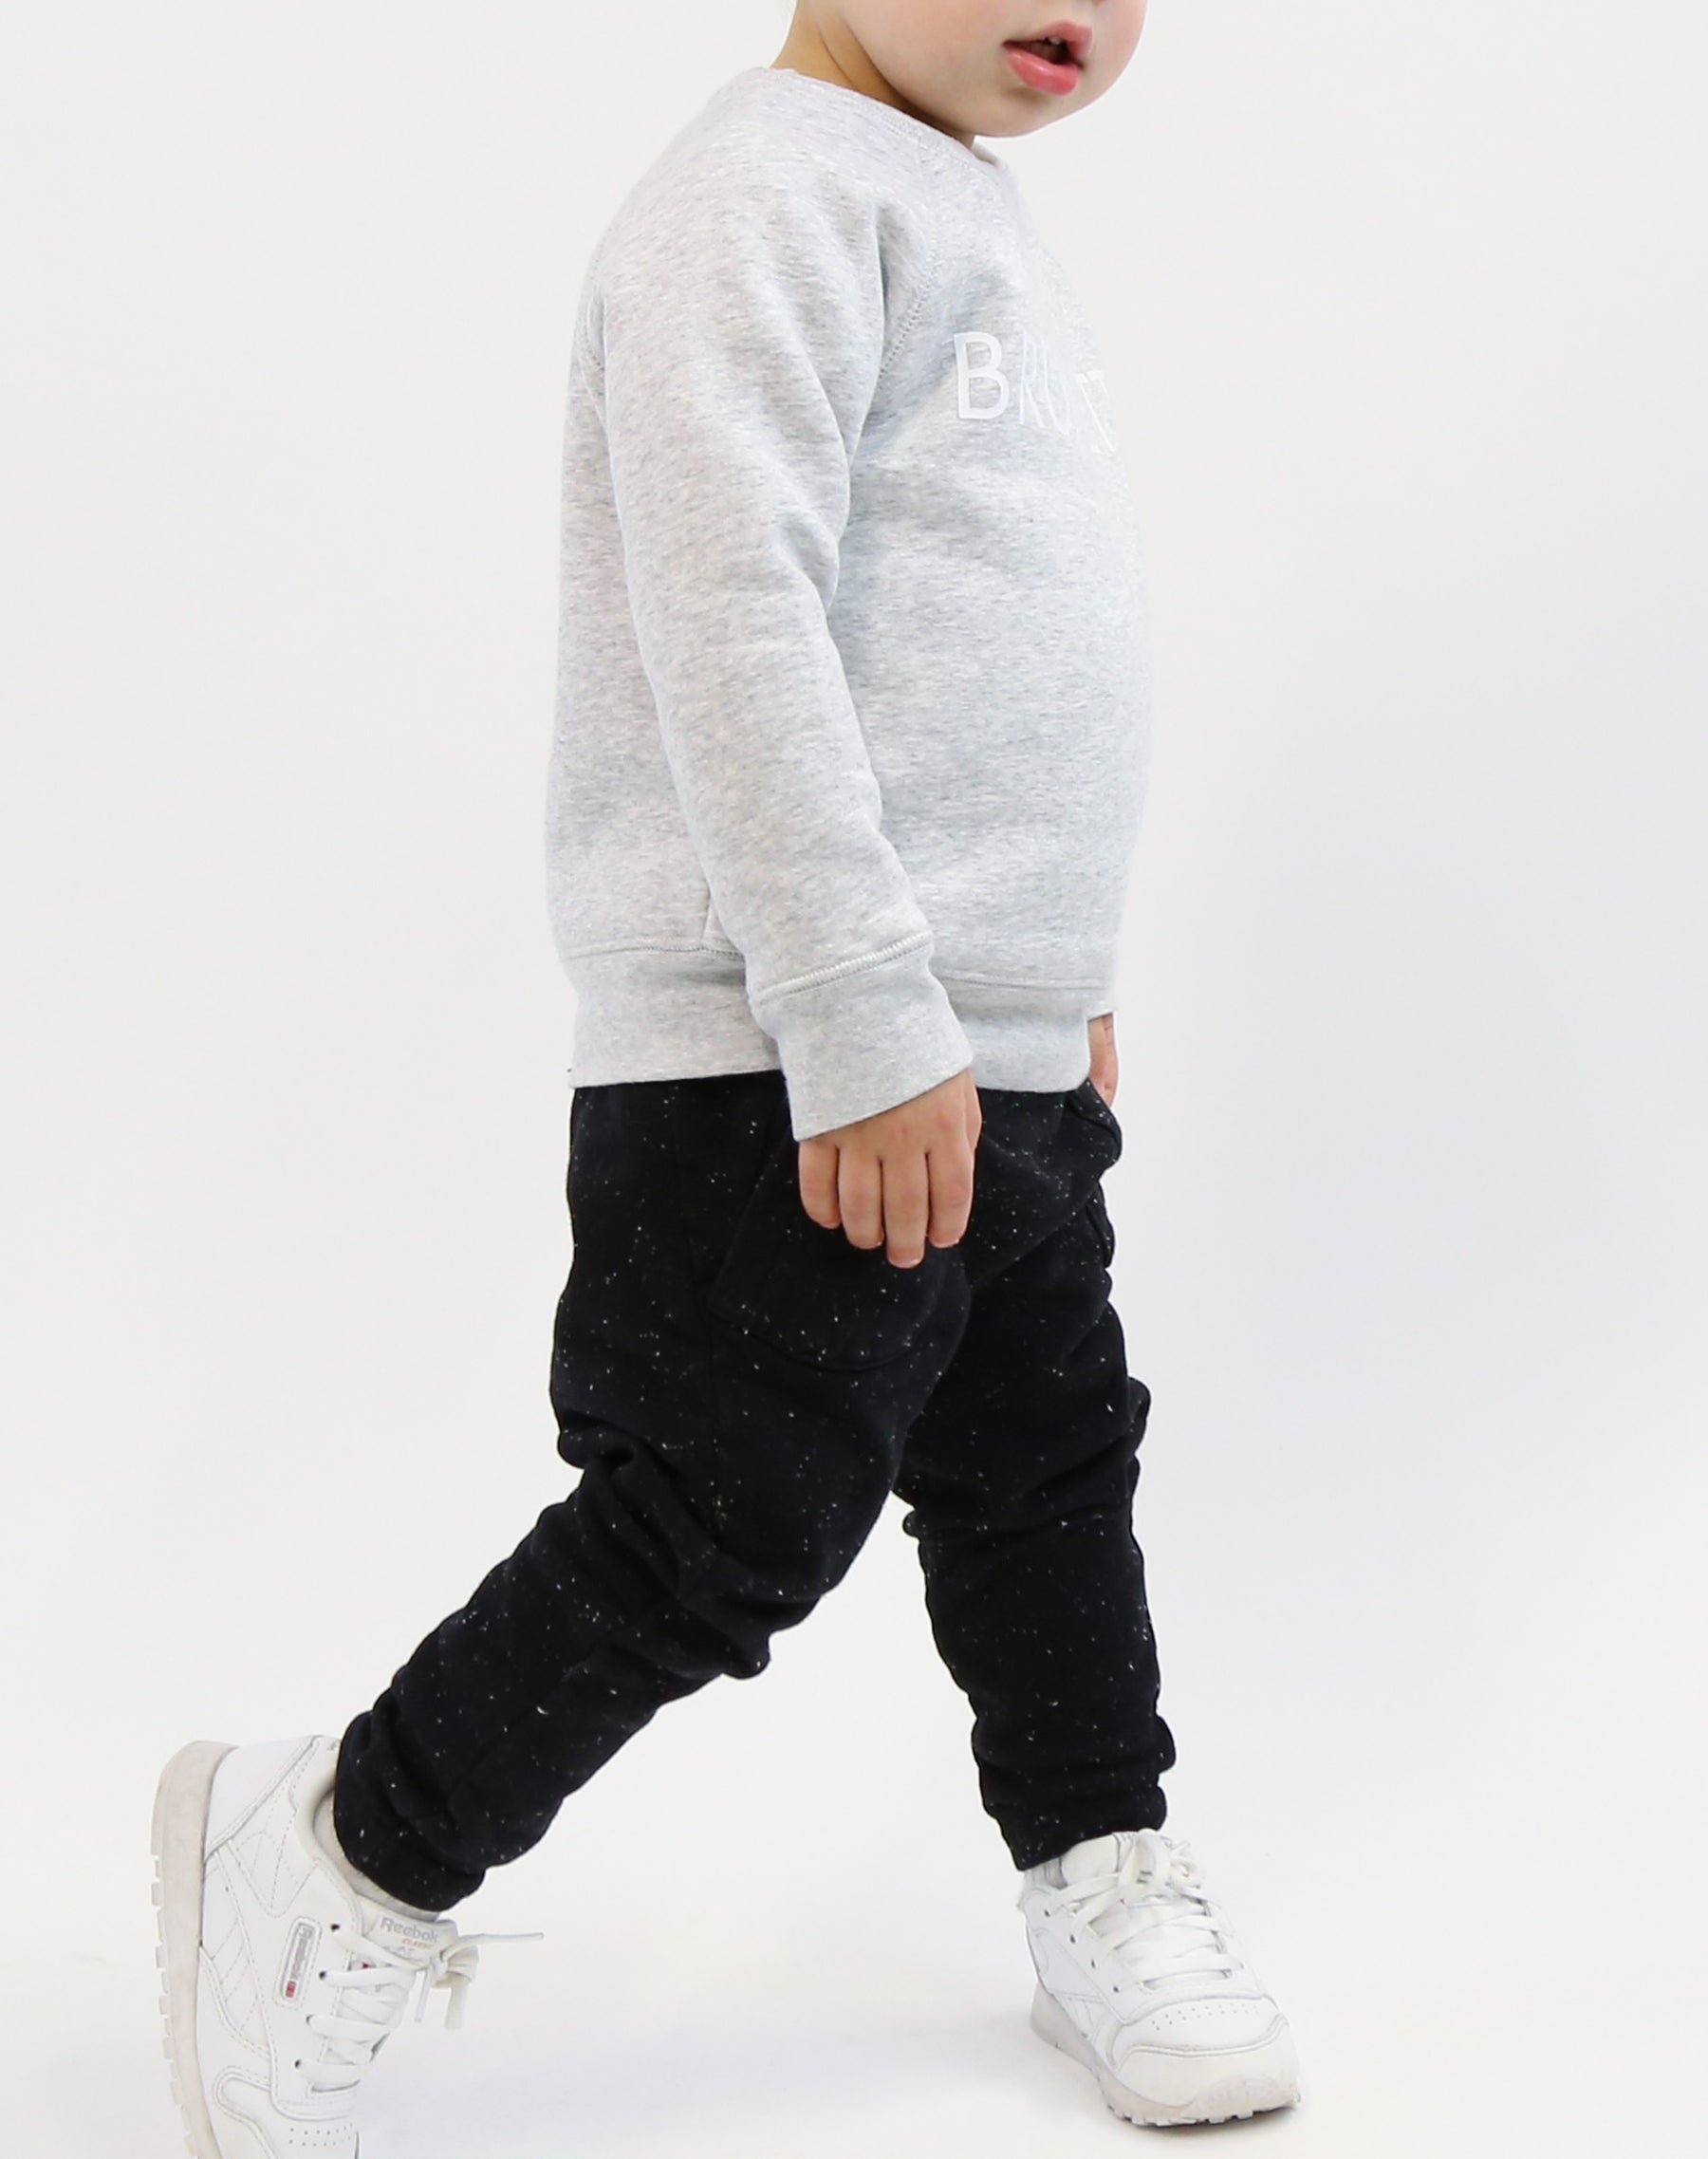 Photo of child walking in the Brunette classic crew neck sweatshirt in pebble grey by Brunette the Label.